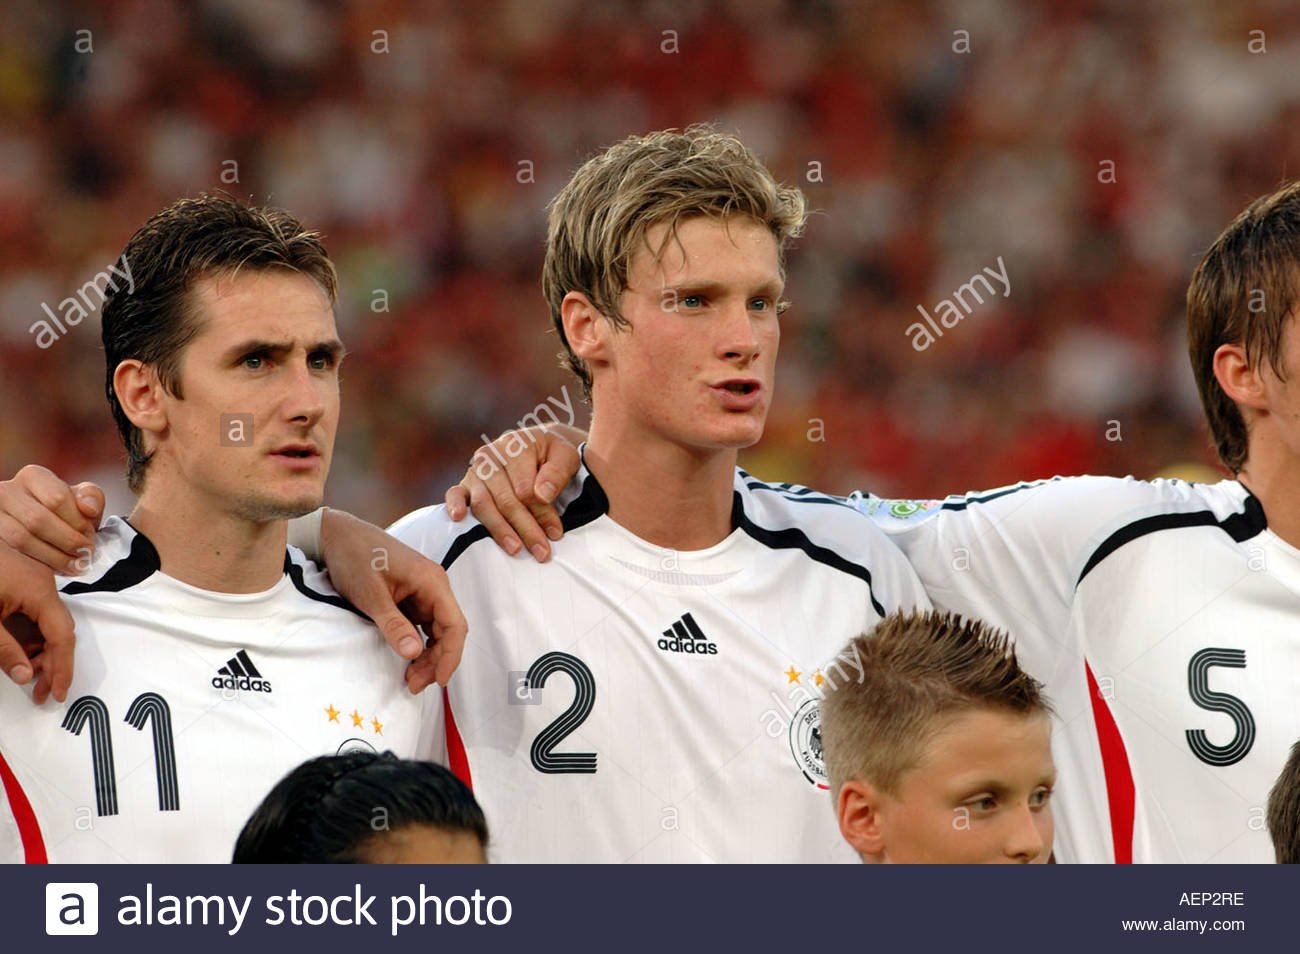 FIFA World Cup 2006 Germany vs Portugal 11 Miroslav Klose 2